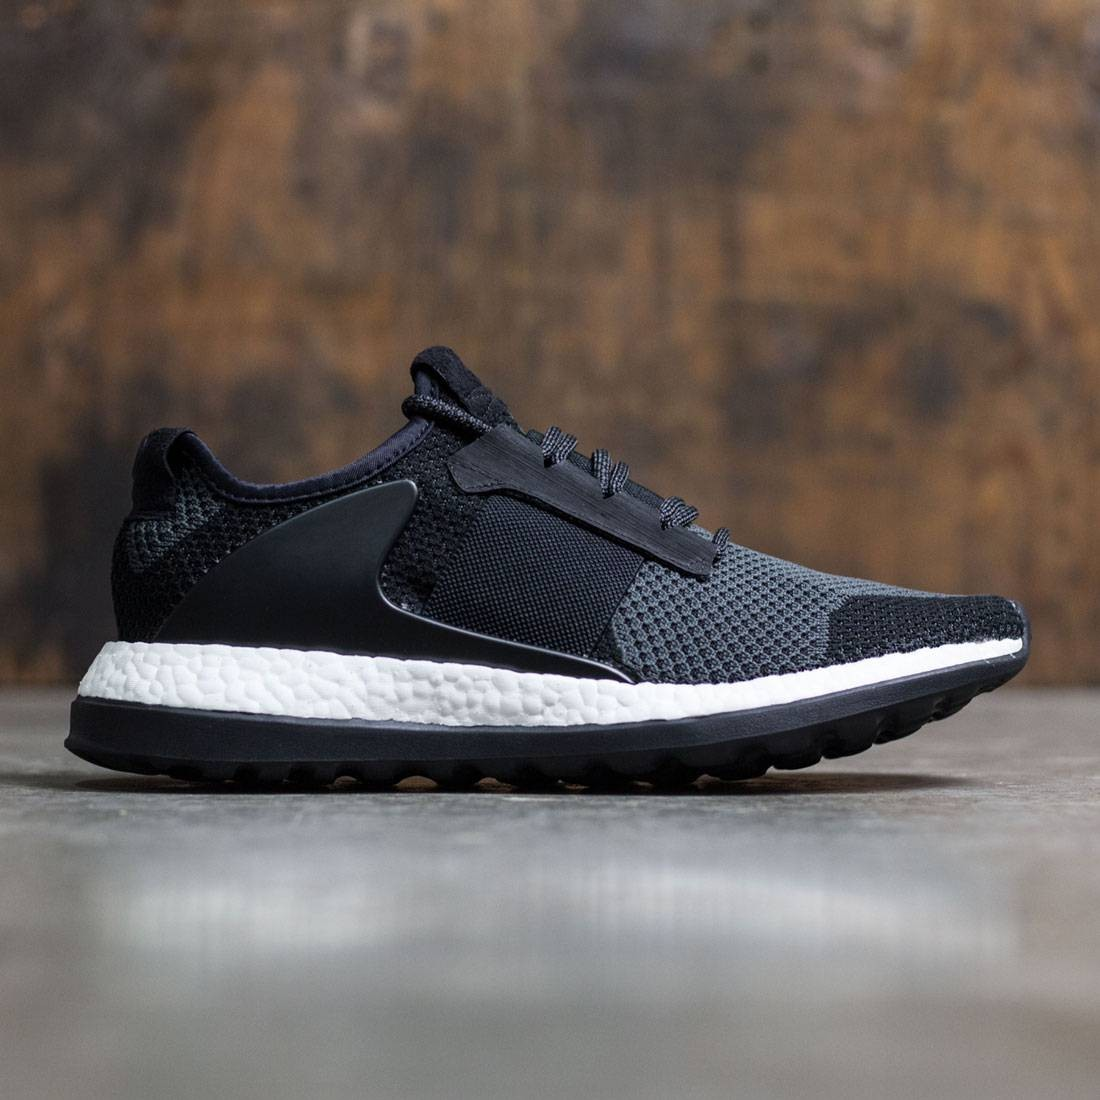 online store d1b4a 59462 ... Adidas Consortium Day One Men ADO Pure Boost ZG (black core black) ...